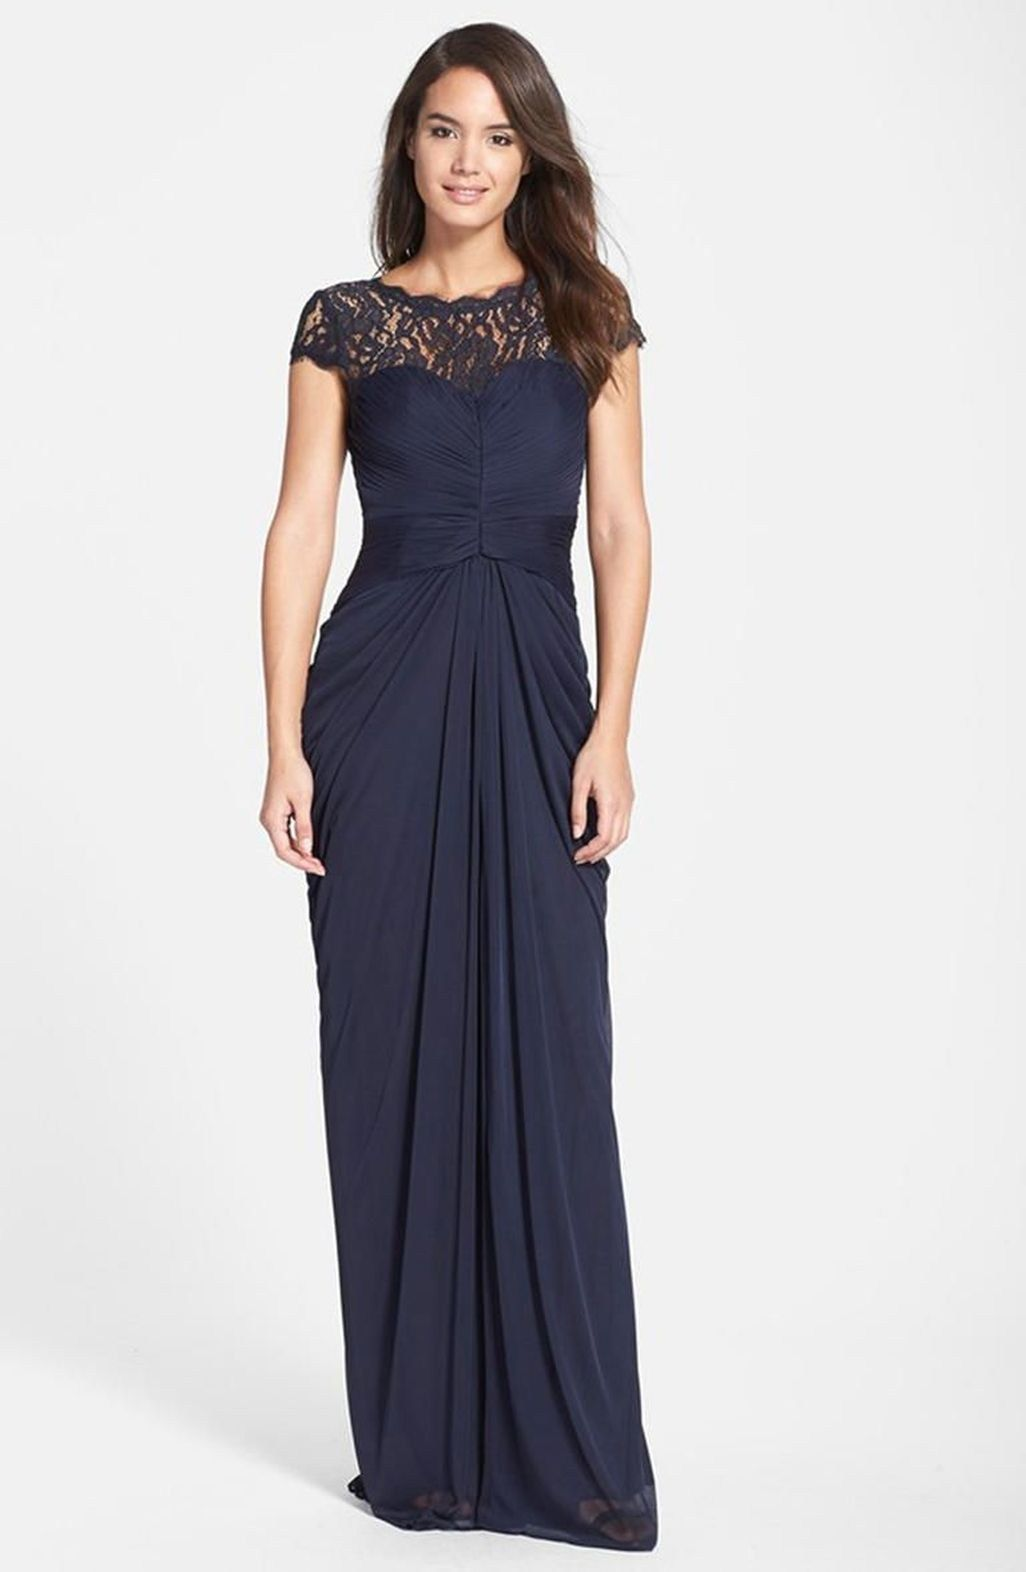 adrianna papell mother of the bride dresses plus size